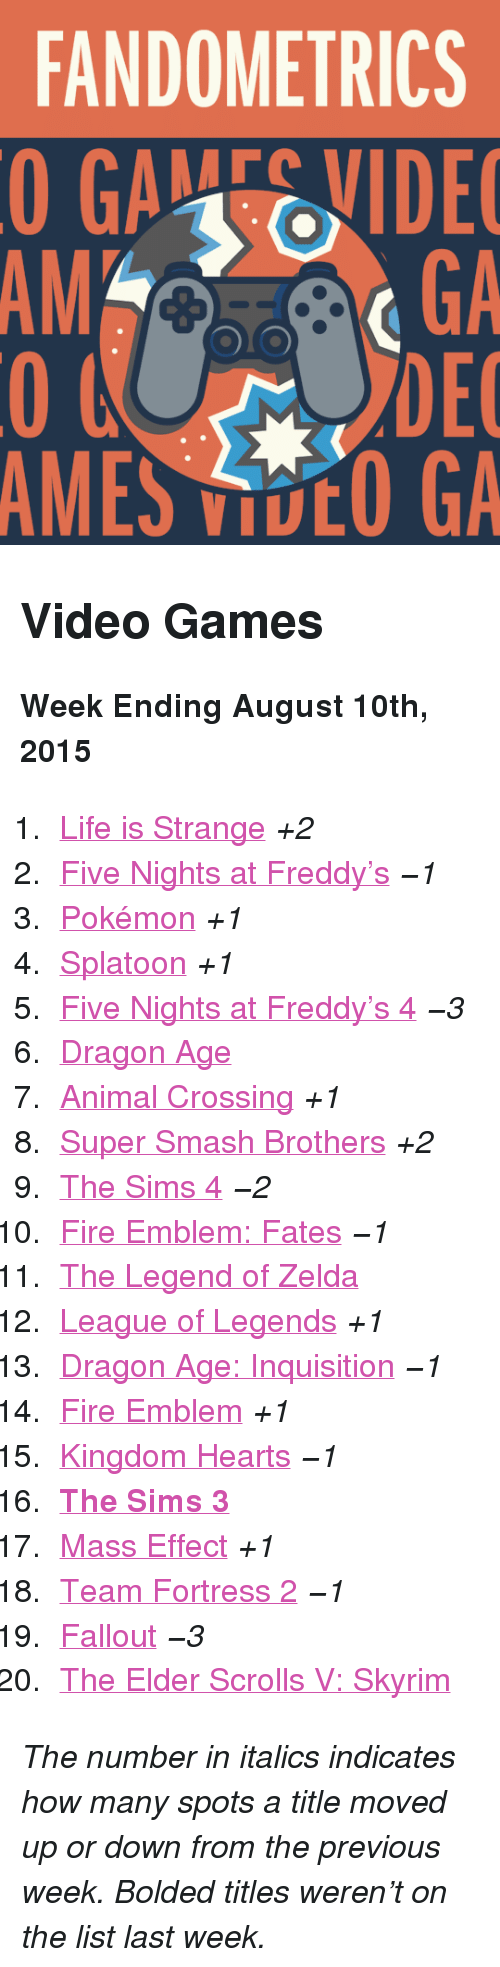 "Five Nights: FANDOMETRICS  GAEVIDE  GA  DEC  AMES VOO GA  AM <h2>Video Games</h2><p><b>Week Ending August 10th, 2015</b></p><ol><li><a href=""http://www.tumblr.com/search/life%20is%20strange"">Life is Strange</a> <i>+2</i></li>  <li><a href=""http://www.tumblr.com/search/five%20nights%20at%20freddy's"">Five Nights at Freddy&rsquo;s</a> <i>−1</i></li>  <li><a href=""http://www.tumblr.com/search/pokemon"">Pokémon</a> <i>+1</i></li>  <li><a href=""http://www.tumblr.com/search/splatoon"">Splatoon</a> <i>+1</i></li>  <li><a href=""http://www.tumblr.com/search/five%20nights%20at%20freddy's%204"">Five Nights at Freddy&rsquo;s 4</a> <i>−3</i></li>  <li><a href=""http://www.tumblr.com/search/dragon%20age"">Dragon Age</a></li>  <li><a href=""http://www.tumblr.com/search/acnl"">Animal Crossing</a> <i>+1</i></li>  <li><a href=""http://www.tumblr.com/search/super%20smash%20bros"">Super Smash Brothers</a> <i>+2</i></li>  <li><a href=""http://www.tumblr.com/search/sims%204"">The Sims 4</a> <i>−2</i></li>  <li><a href=""http://www.tumblr.com/search/fire%20emblem%20fates"">Fire Emblem: Fates</a> <i>−1</i></li>  <li><a href=""http://www.tumblr.com/search/legend%20of%20zelda"">The Legend of Zelda</a></li>  <li><a href=""http://www.tumblr.com/search/league%20of%20legends"">League of Legends</a> <i>+1</i></li>  <li><a href=""http://www.tumblr.com/search/dragon%20age%20inquisition"">Dragon Age: Inquisition</a> <i>−1</i></li>  <li><a href=""http://www.tumblr.com/search/fire%20emblem"">Fire Emblem</a> <i>+1</i></li>  <li><a href=""http://www.tumblr.com/search/kingdom%20hearts"">Kingdom Hearts</a> <i>−1</i></li>  <li><a href=""http://www.tumblr.com/search/sims%203""><b>The Sims 3</b></a></li>  <li><a href=""http://www.tumblr.com/search/mass%20effect"">Mass Effect</a> <i>+1</i></li>  <li><a href=""http://www.tumblr.com/search/tf2"">Team Fortress 2</a> <i>−1</i></li>  <li><a href=""http://www.tumblr.com/search/fallout"">Fallout</a> <i>−3</i></li>  <li><a href=""http://www.tumblr.com/search/skyrim"">The Elder Scrolls V: Skyrim</a></li></ol><p><i>The number in italics indicates how many spots a title moved up or down from the previous week. Bolded titles weren't on the list last week.</i></p>"